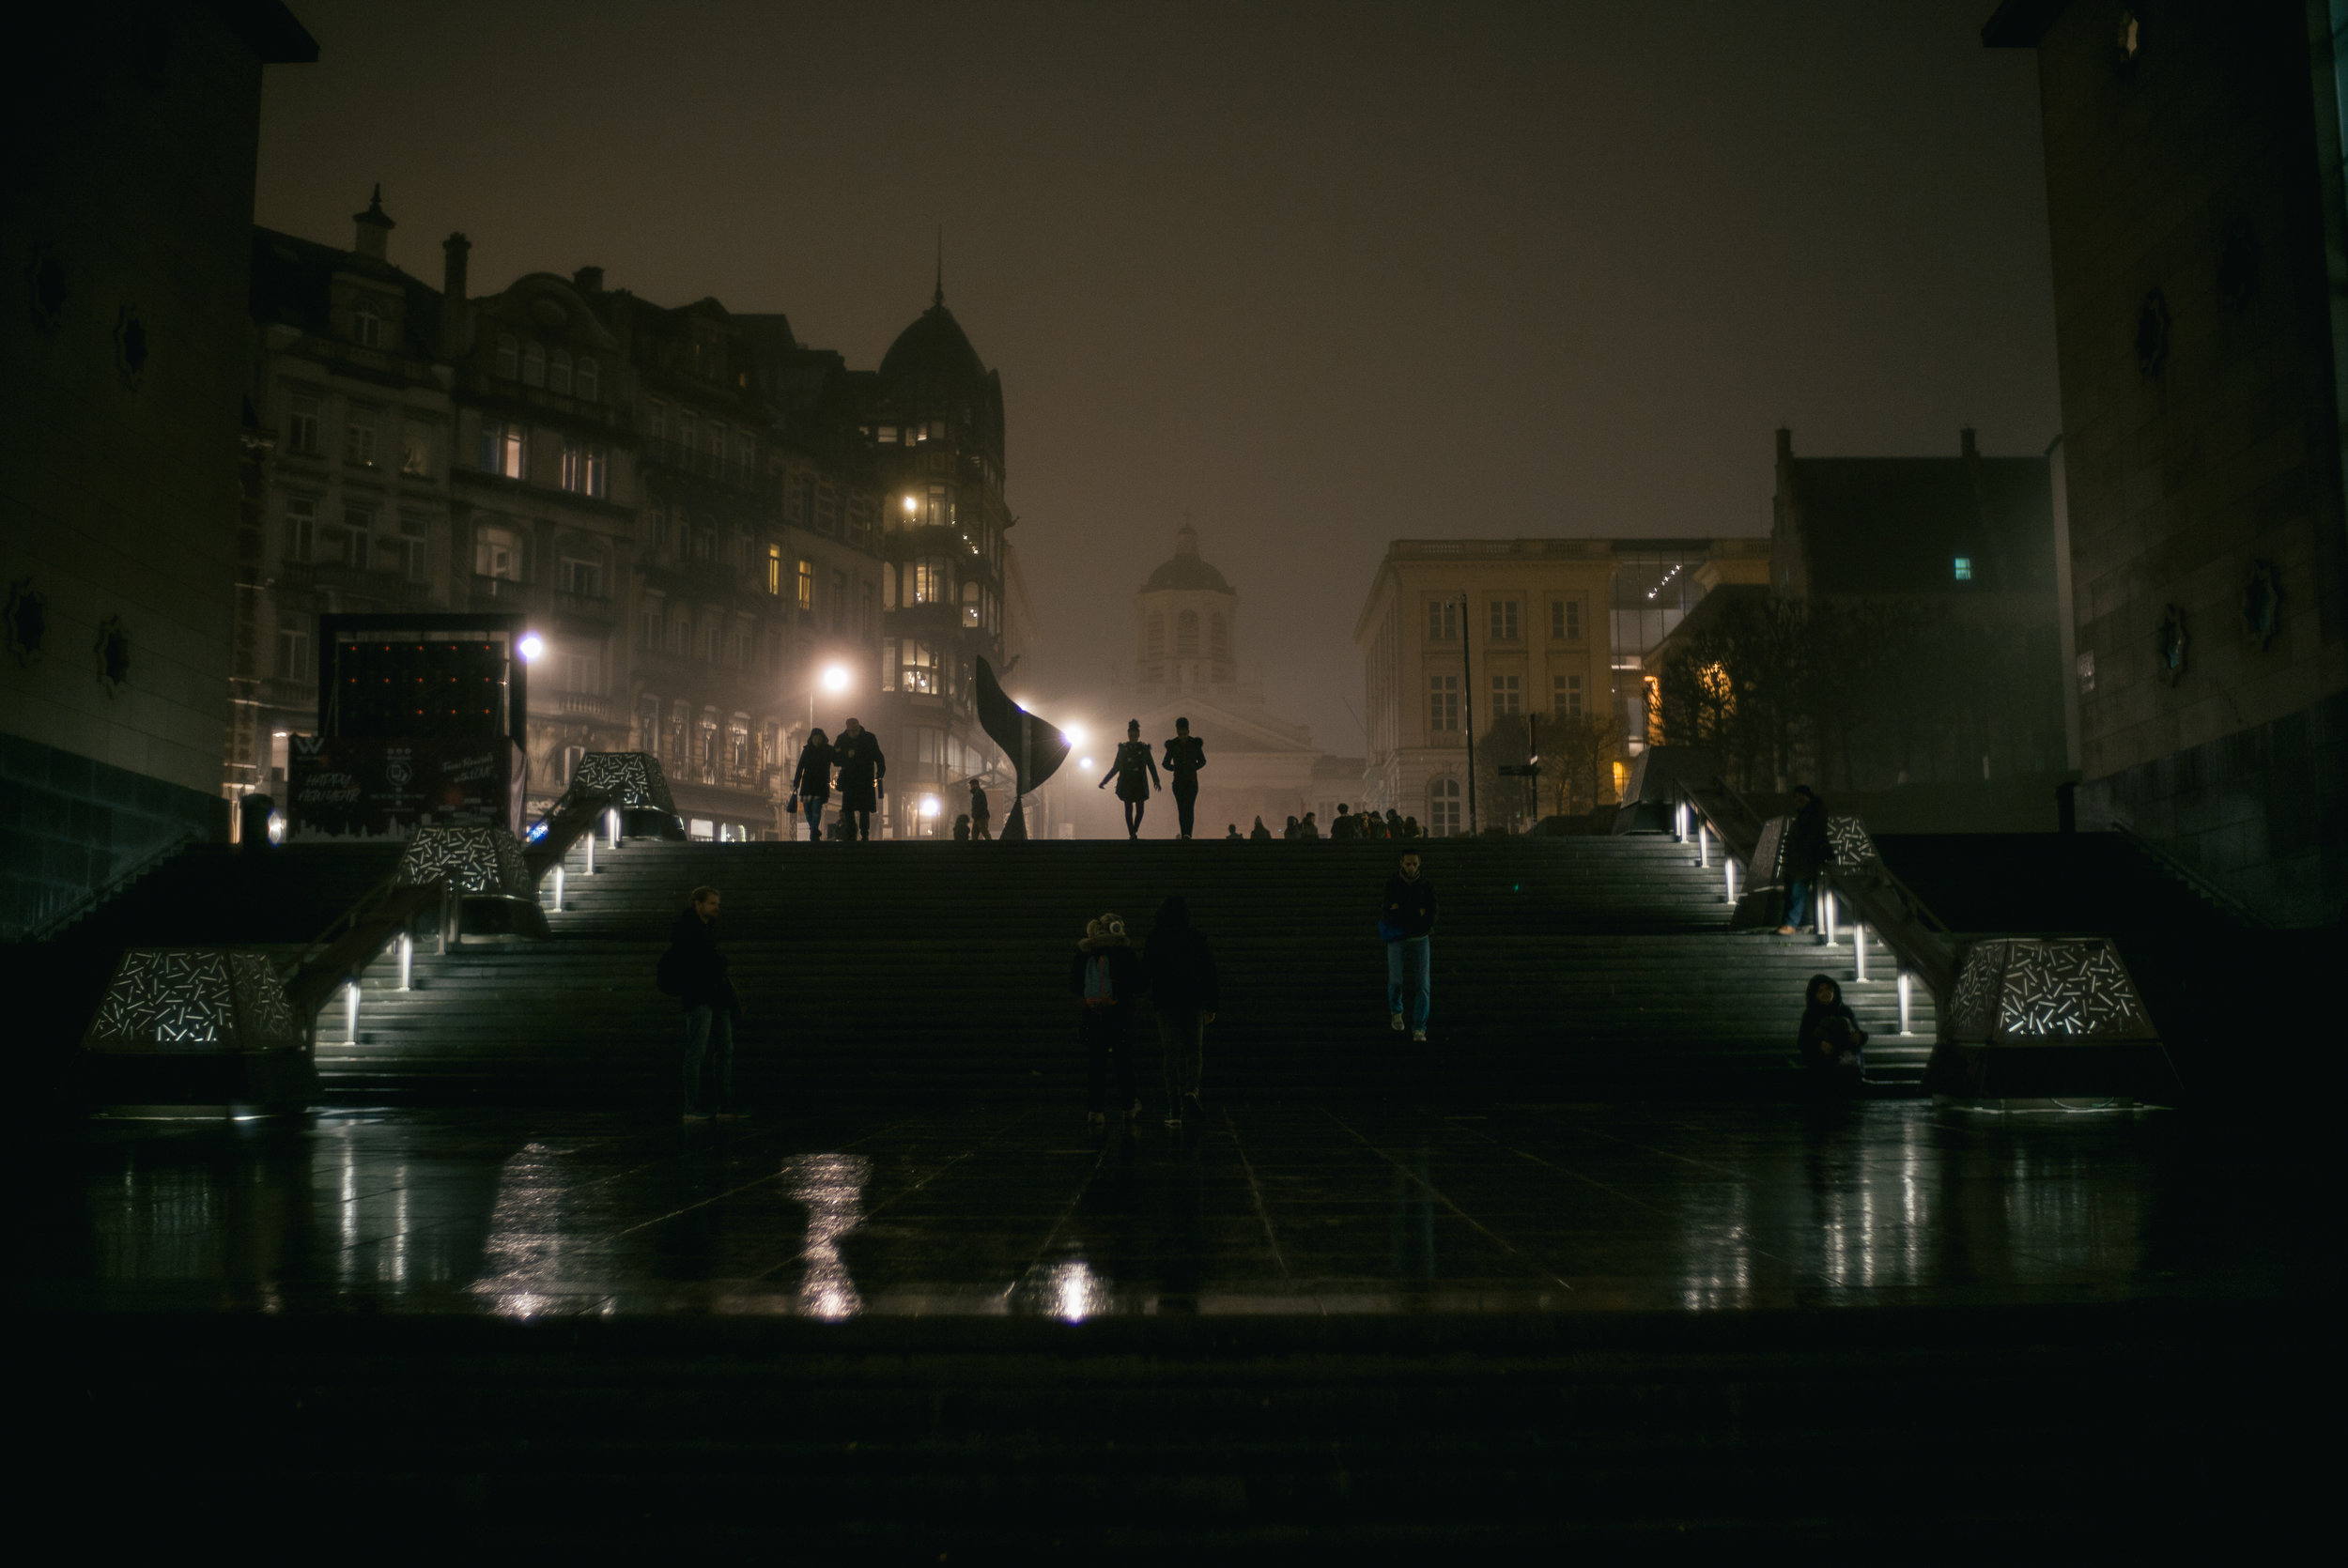 palais at night in fog-1006464.jpg